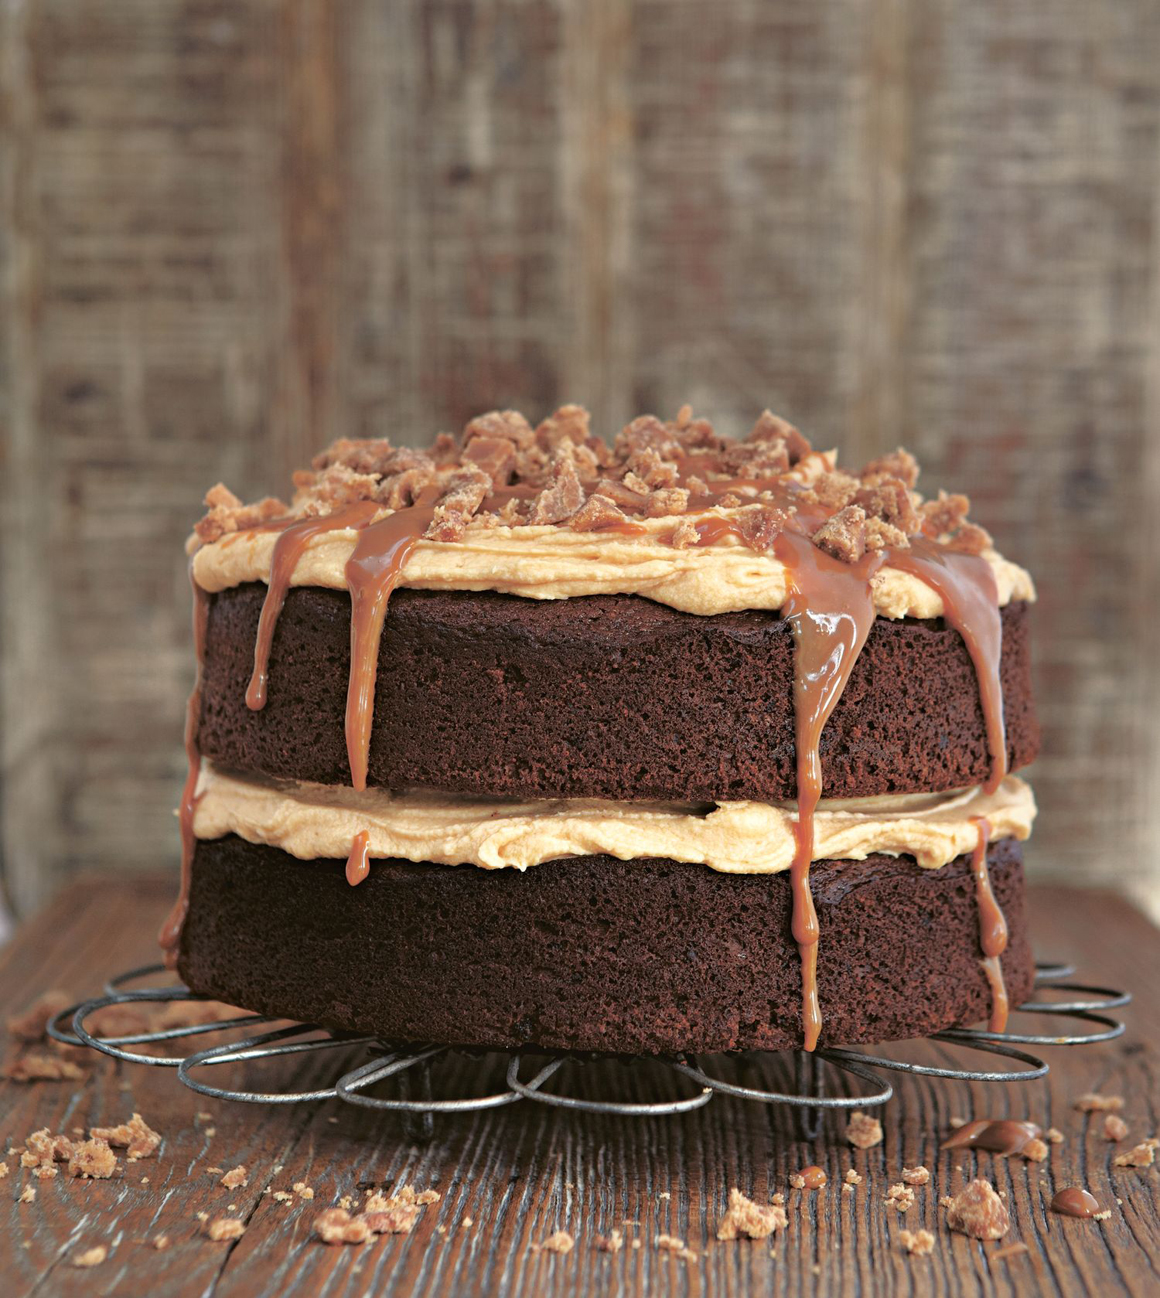 Glorious-Sticky-Toffee-Cake-1160x1298